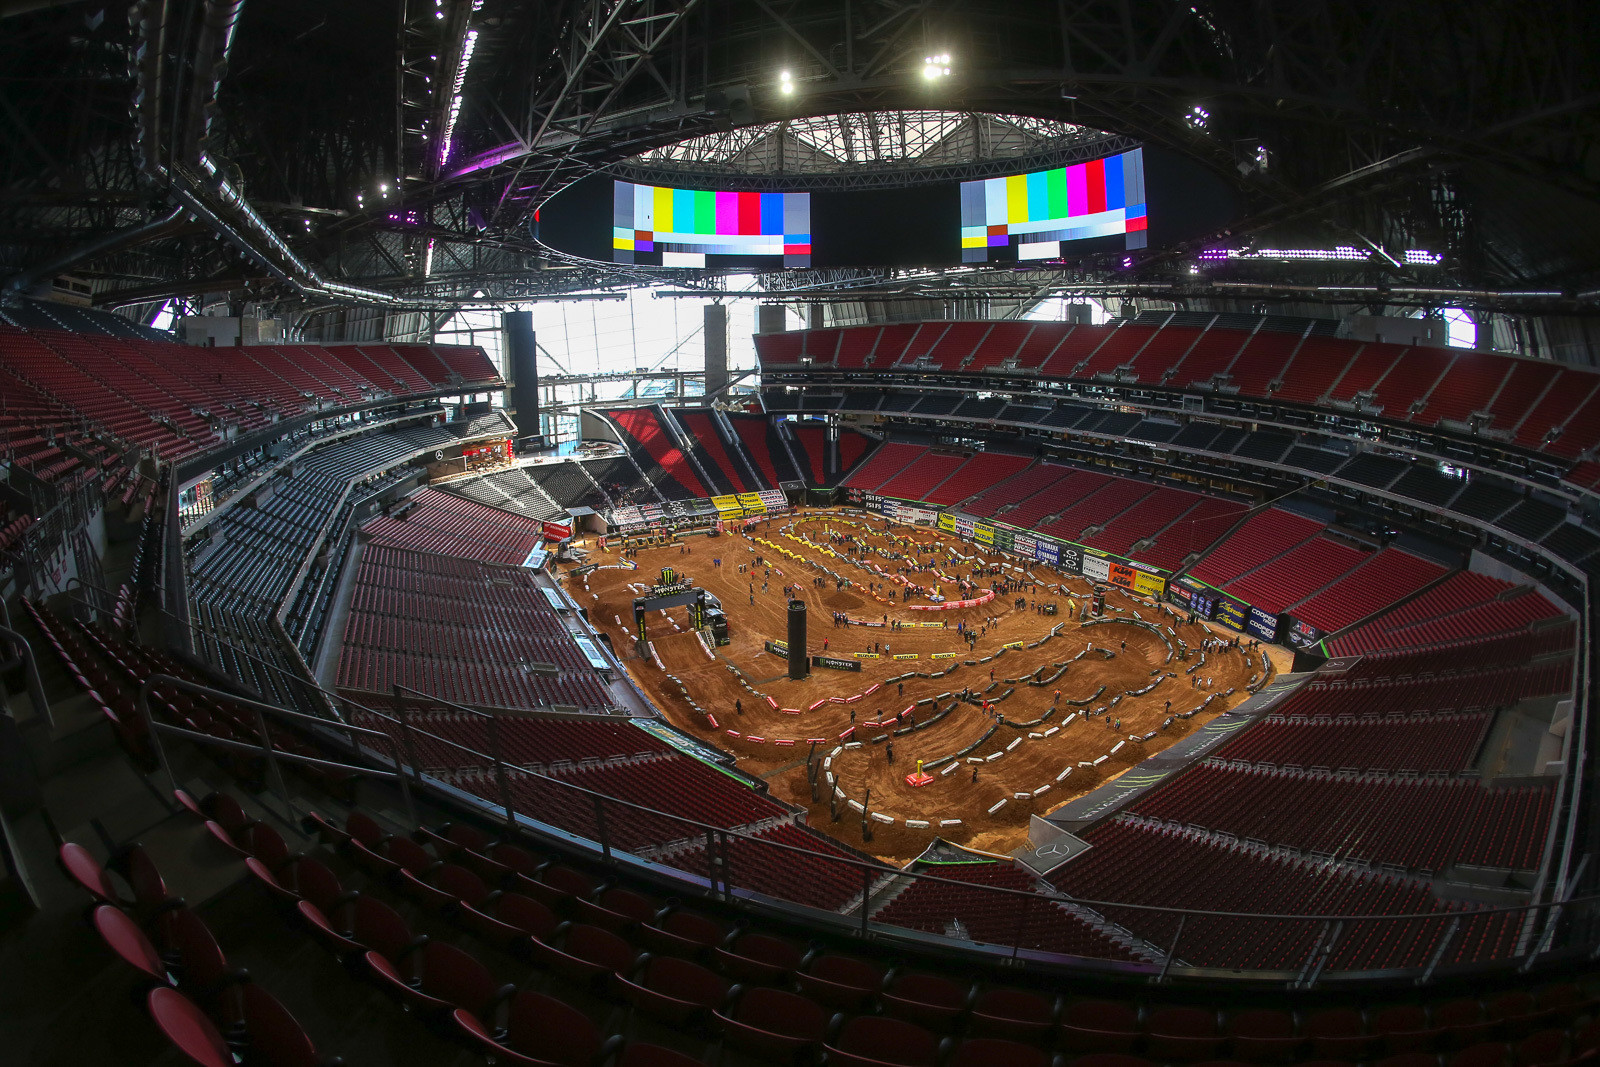 We loved the history and racing in the Georgia Dome, but the new Mercedes-Benz Stadium that replaced it is a state-of-the-art building that easily eclipses the old venue.